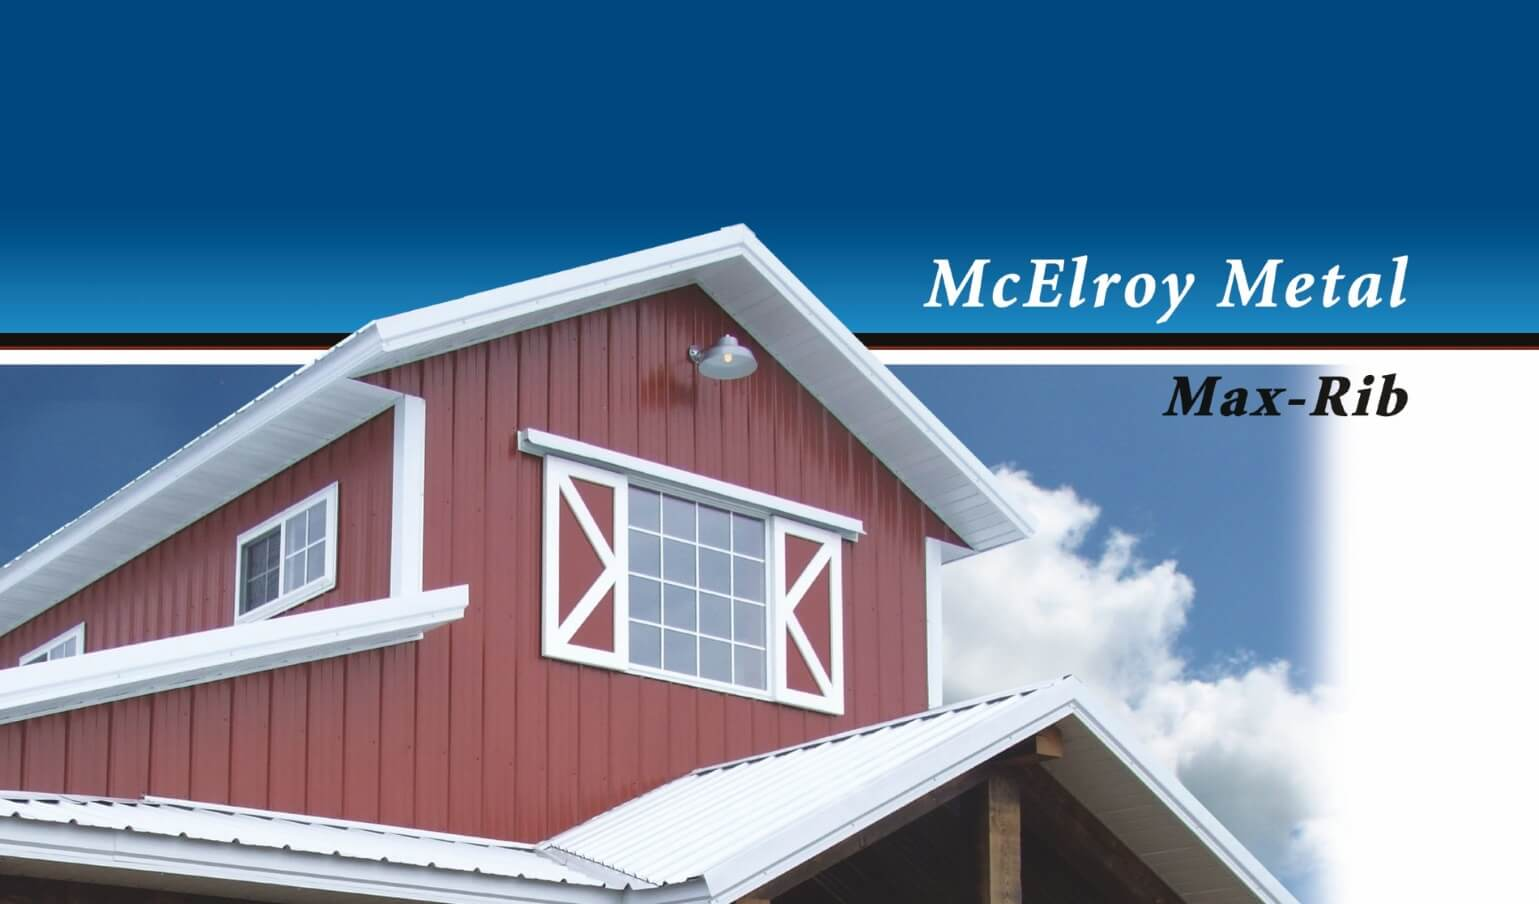 McElroy Metal releases updated Max-Rib brochure